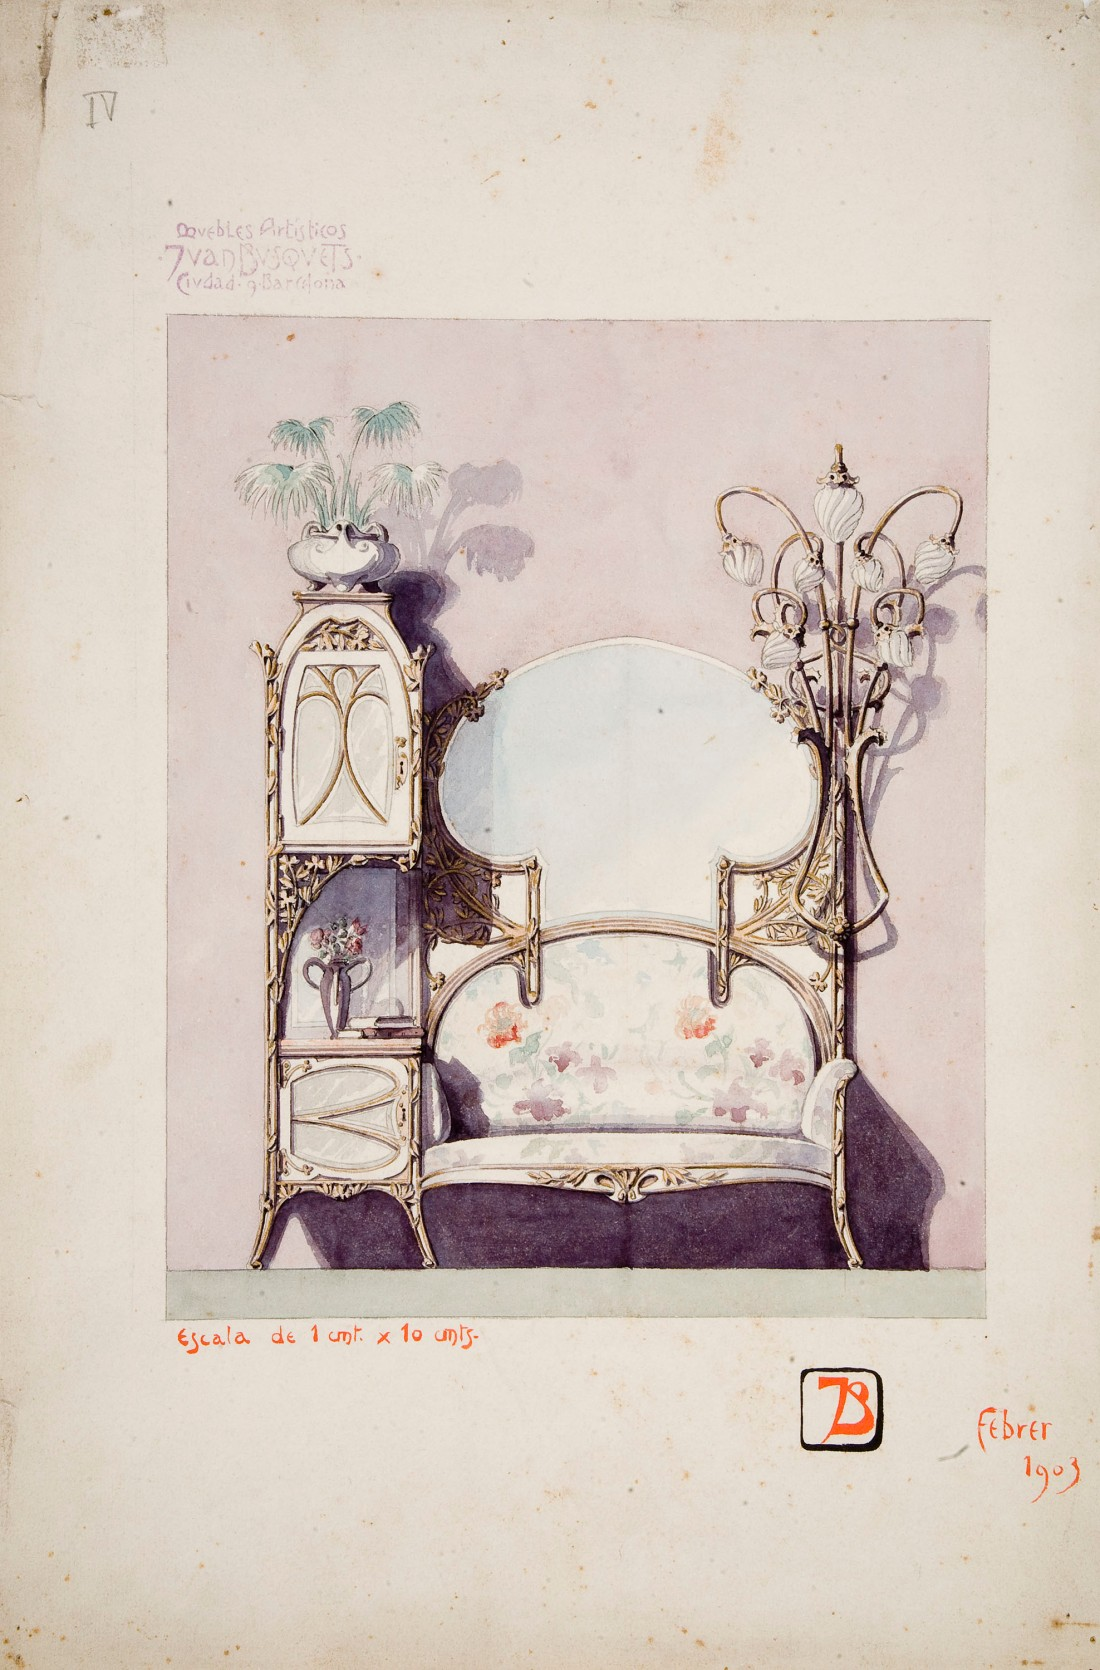 """Moble de rebedor."" 1903. Watercolor and graphite on paper."